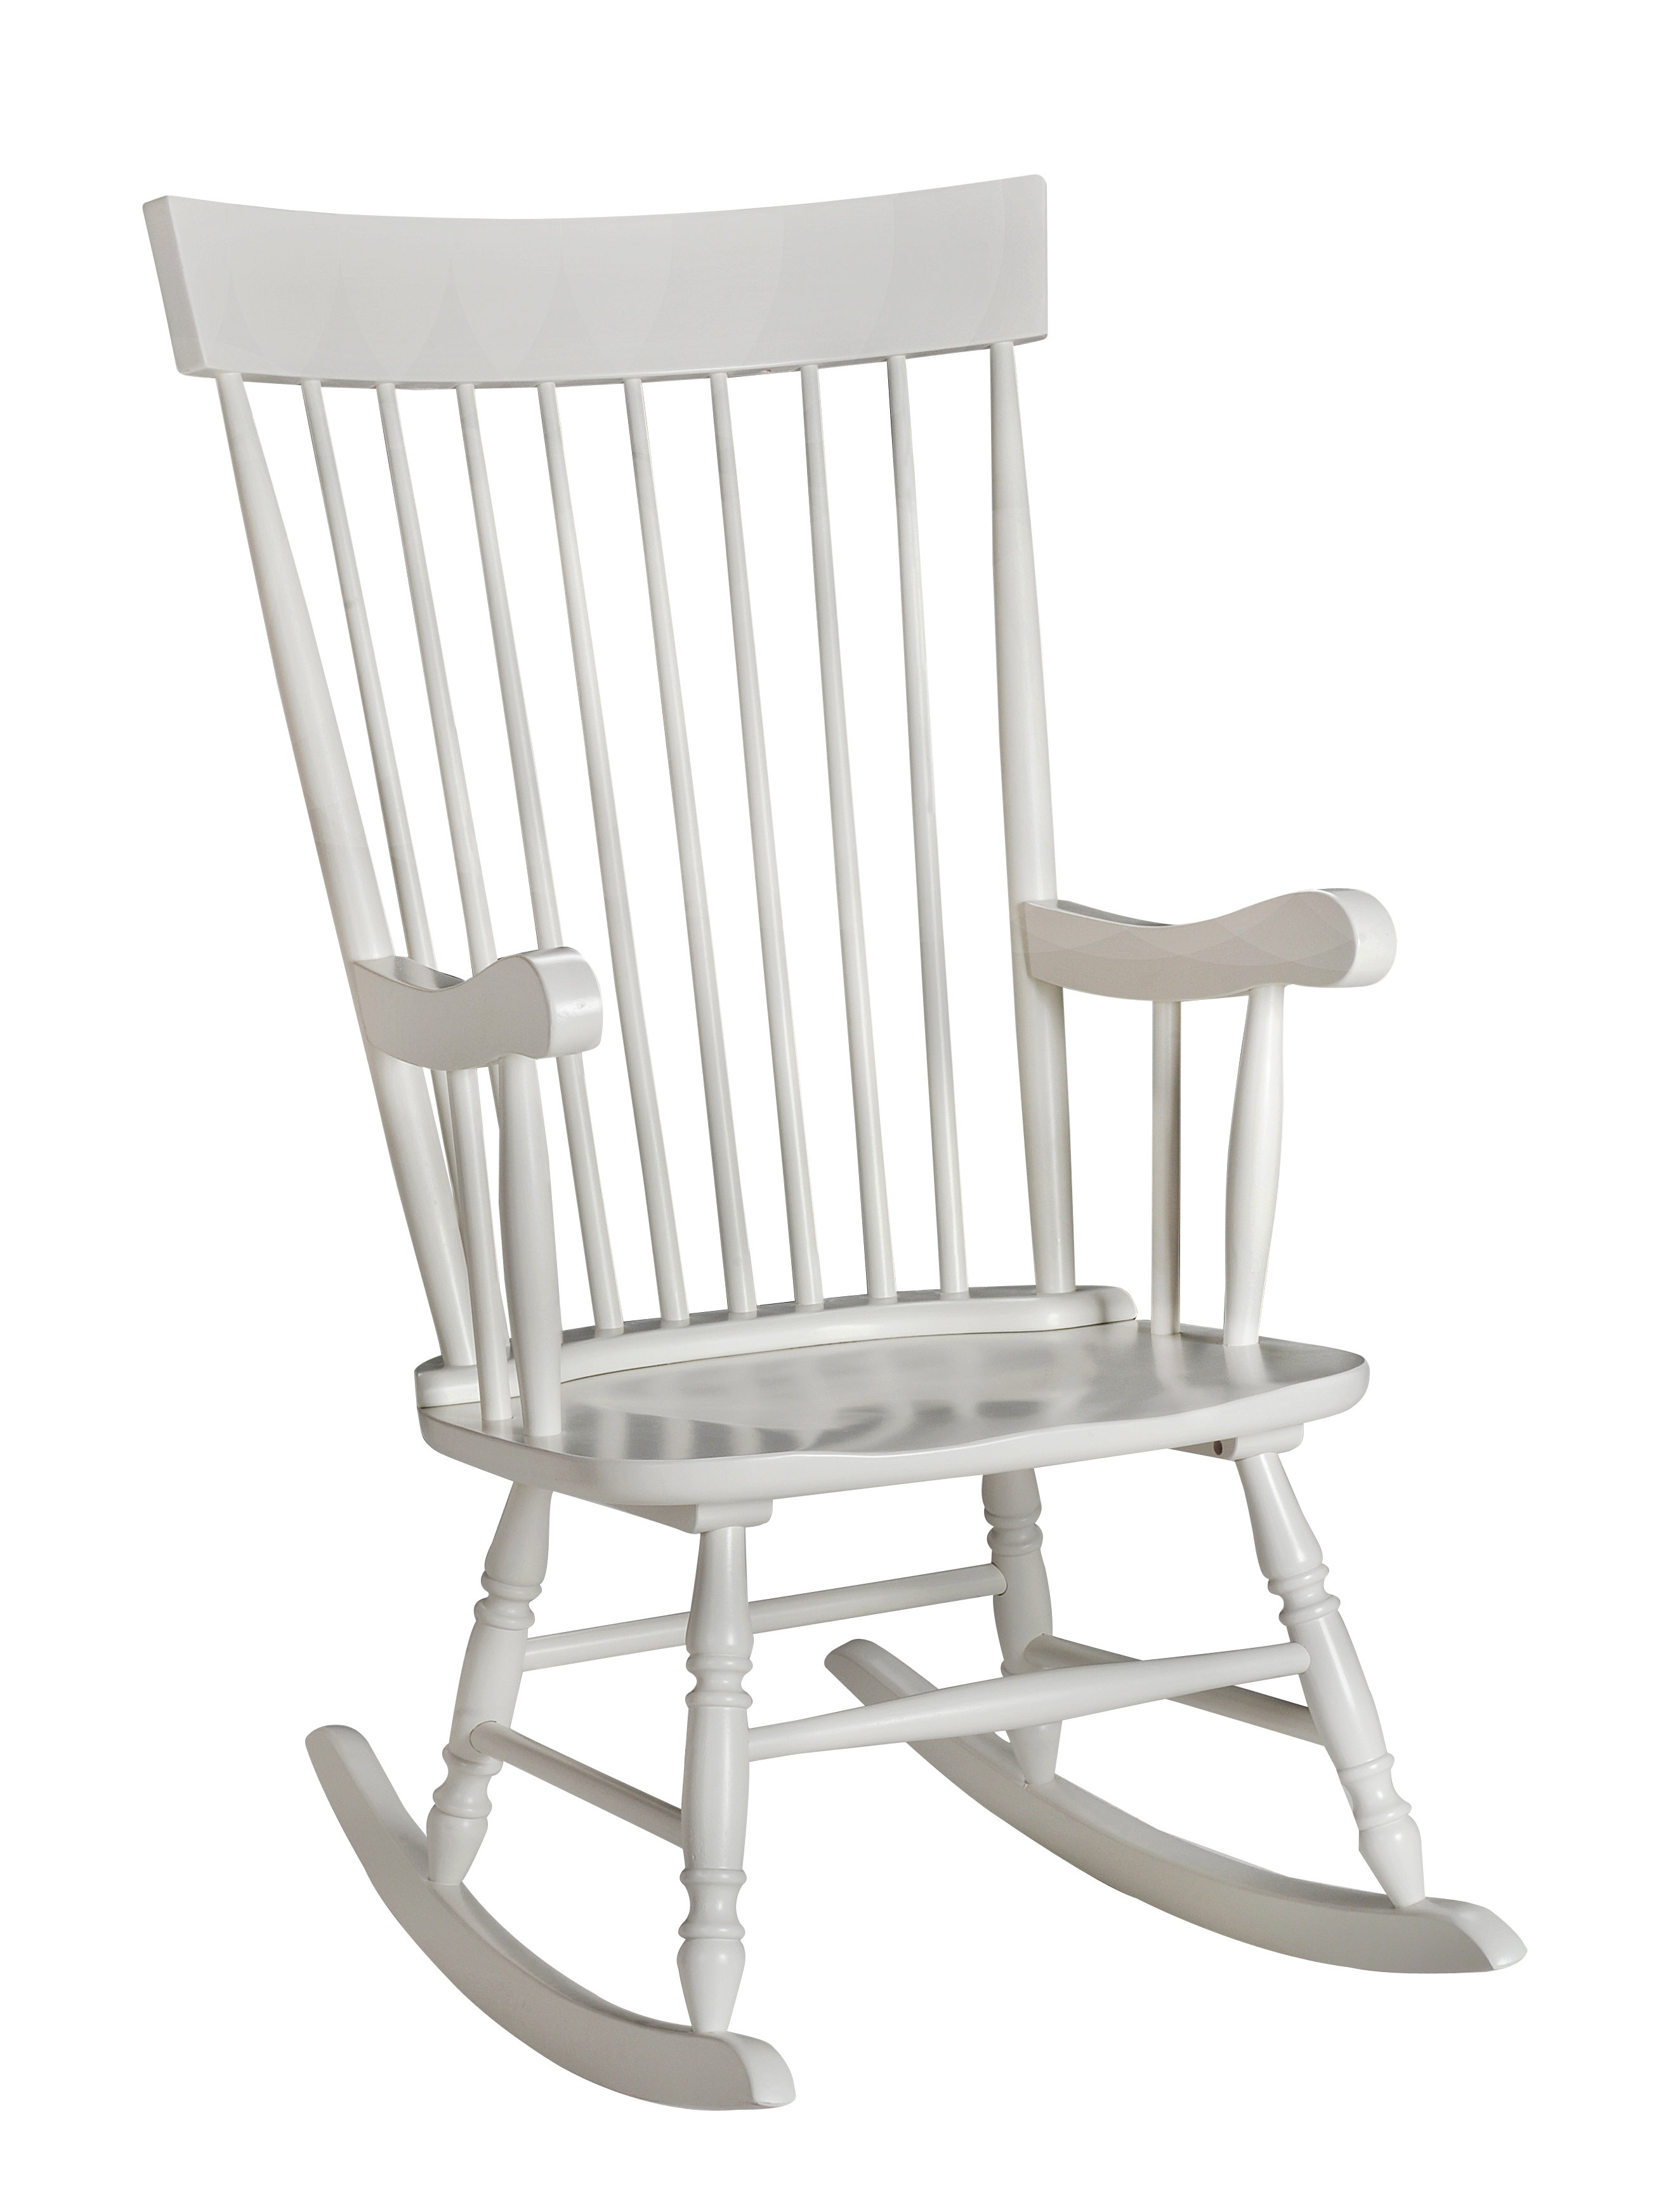 Inspiration about Danvers Rocking Chair In Traditional Style Wooden Rocking Chairs With Contoured Seat, Black (#7 of 20)